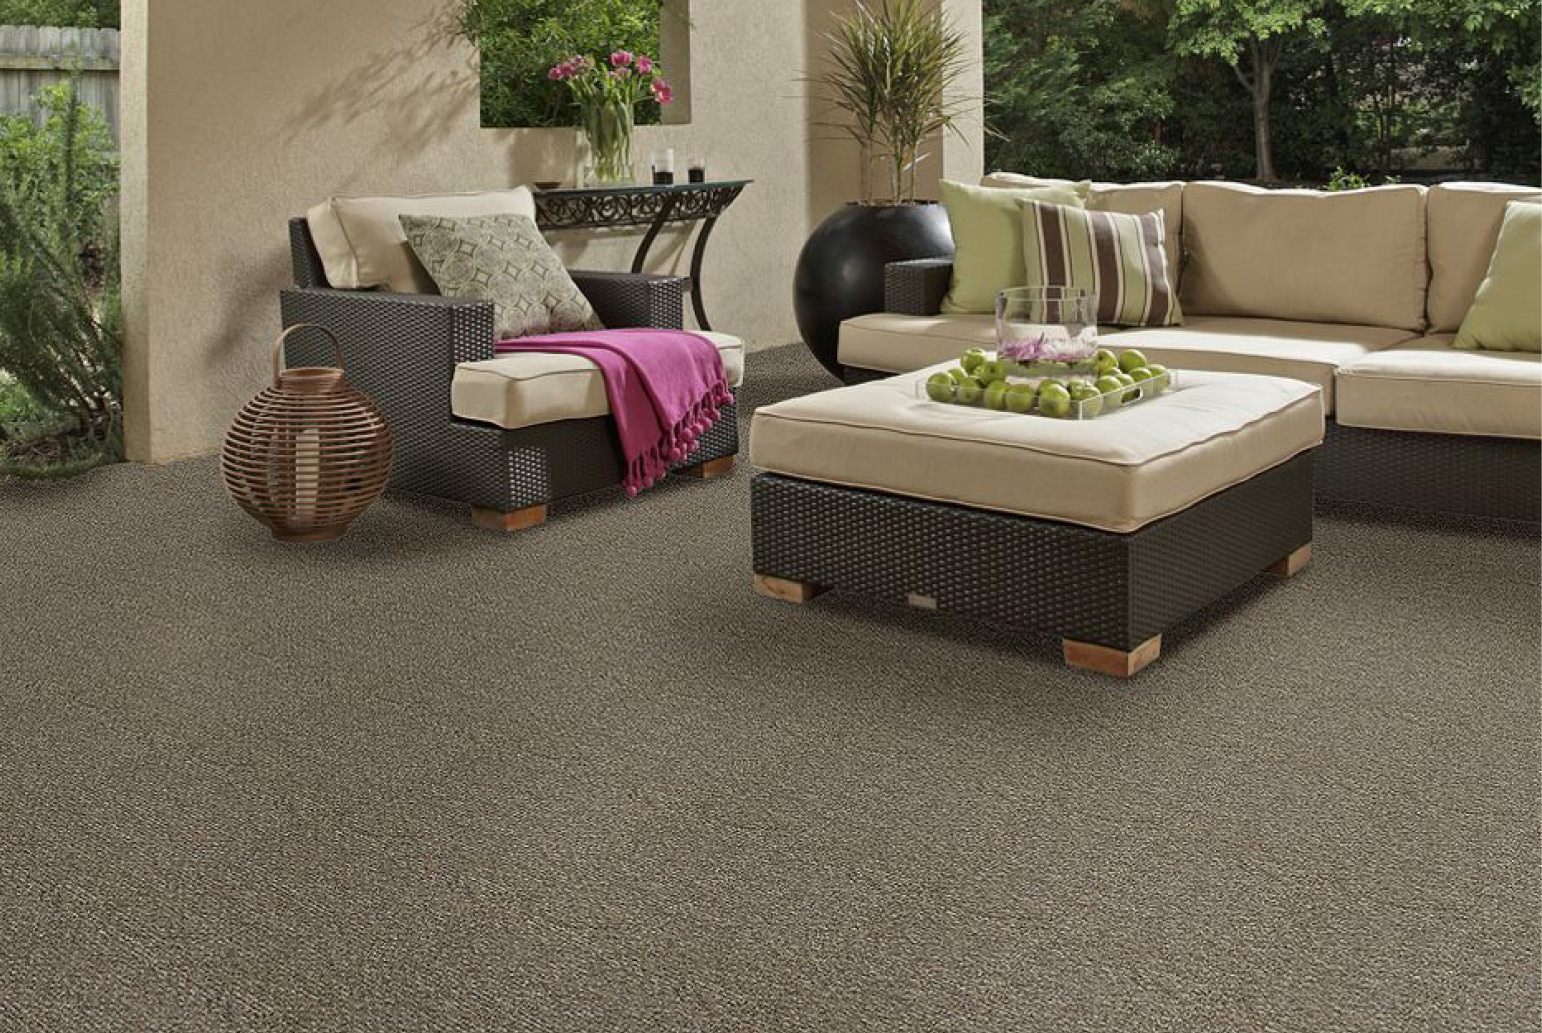 Outdoor Carpeting Outdoor Carpet Is A Wonderful Option When It Comes To Outdoor  Patio Flooring PBJTLRG